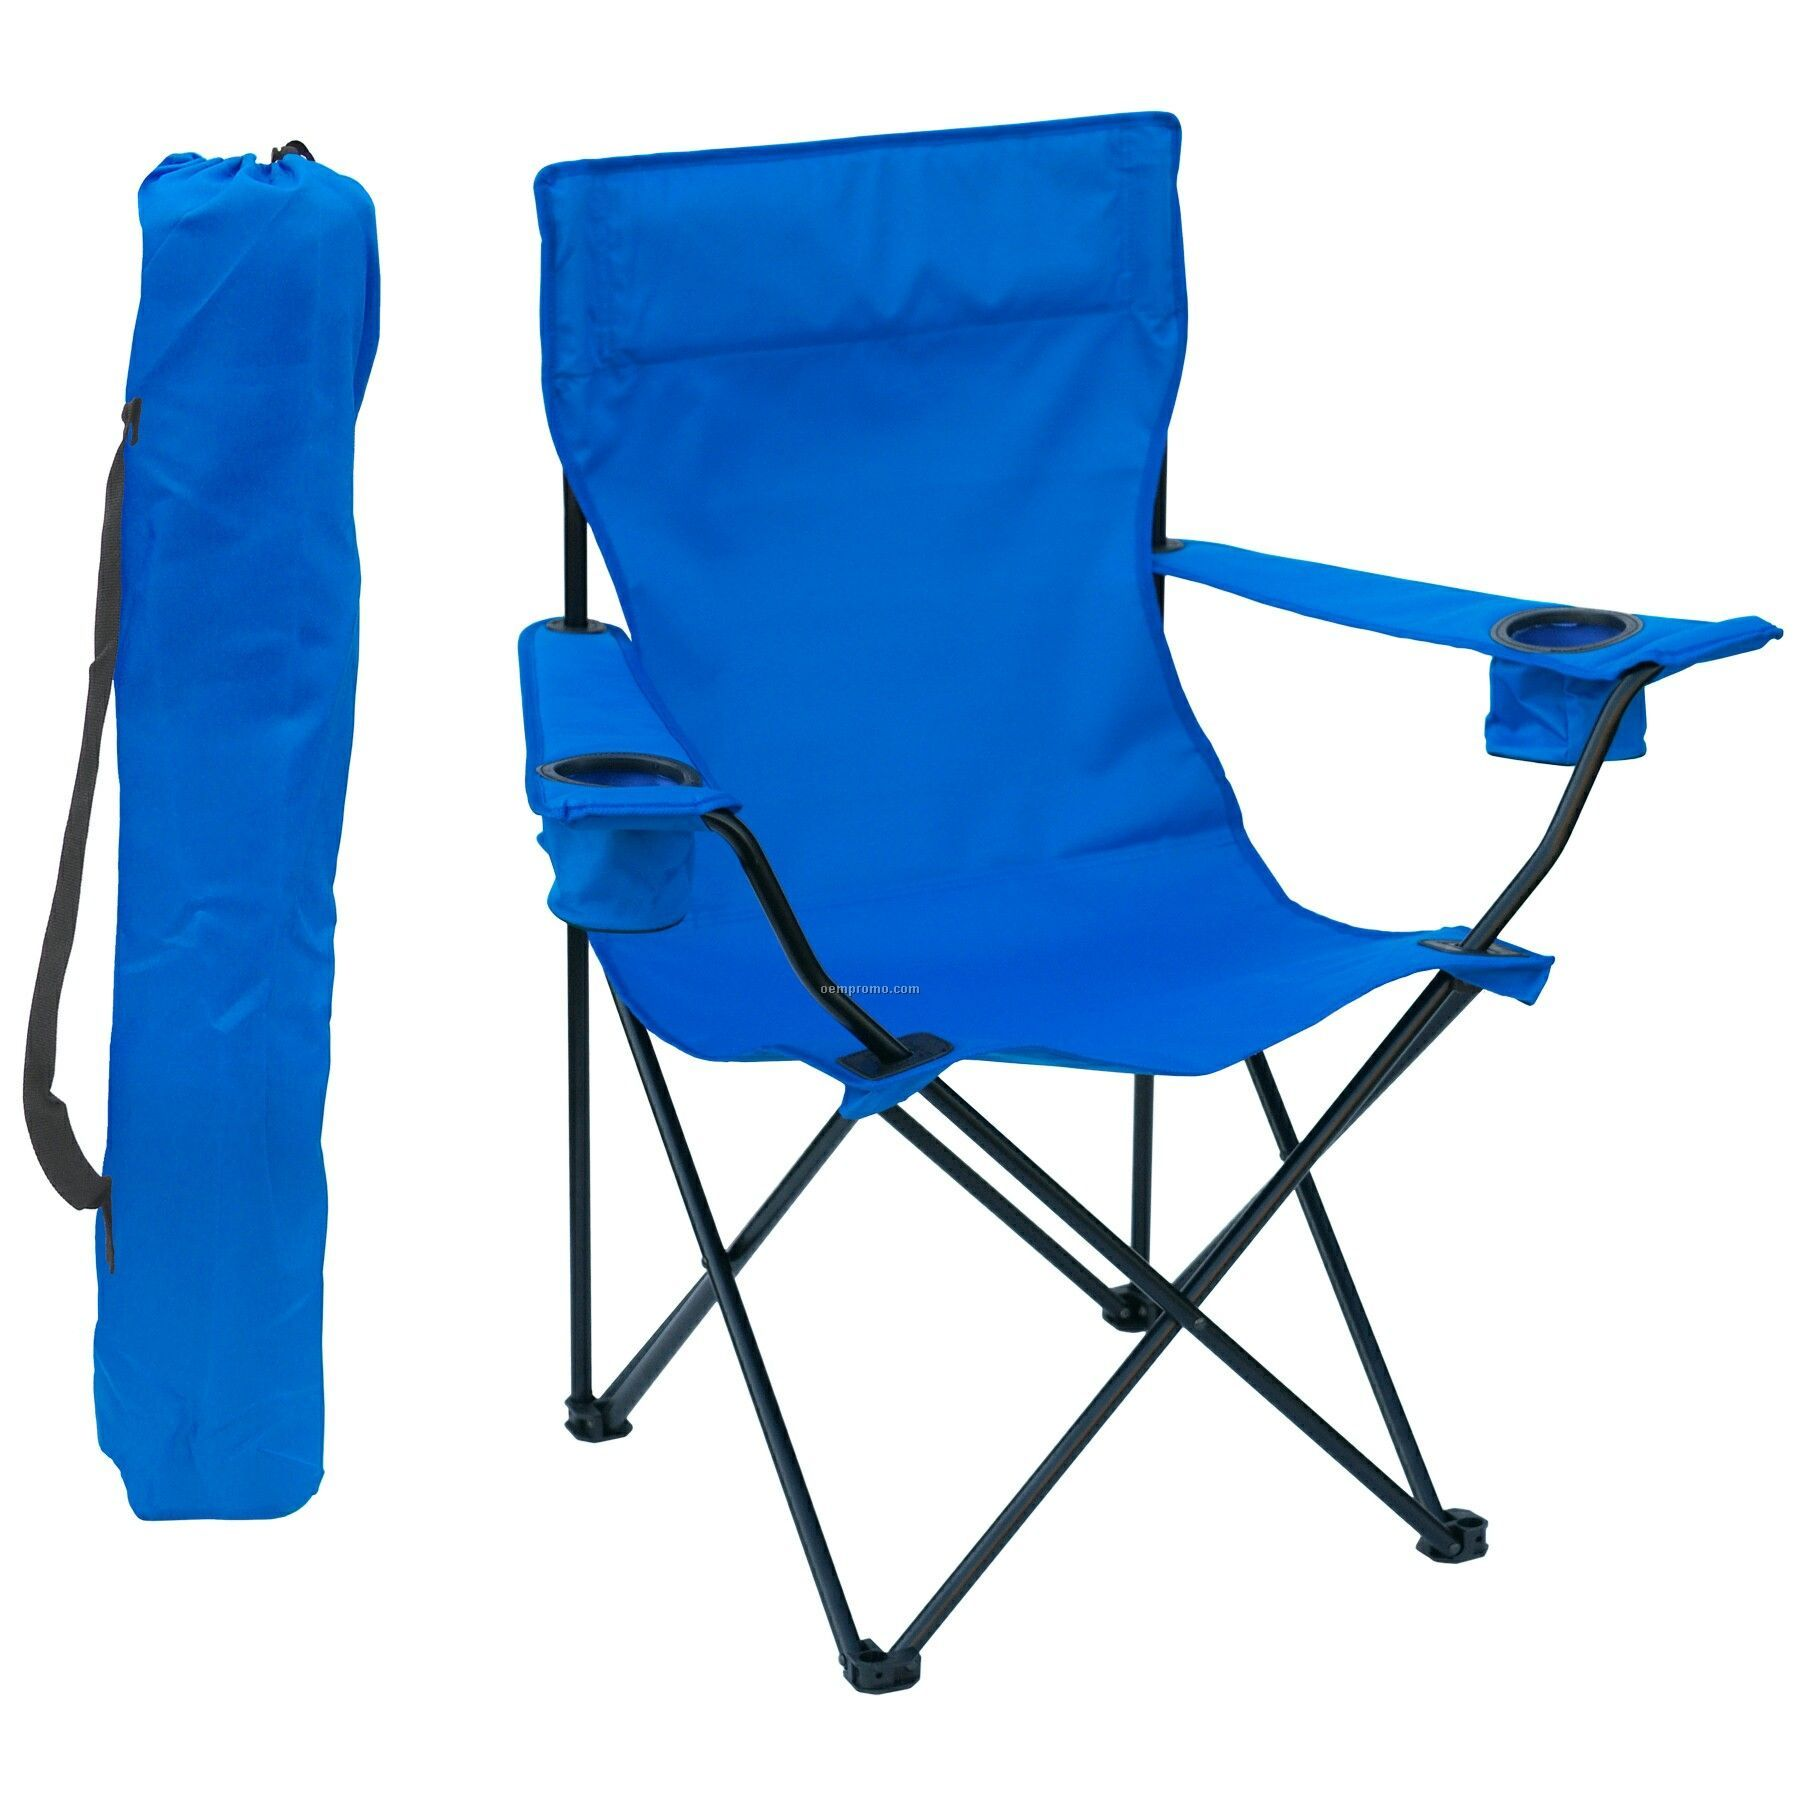 Folding Chair WArm Rests 2 Cup Holders And Carry Bag